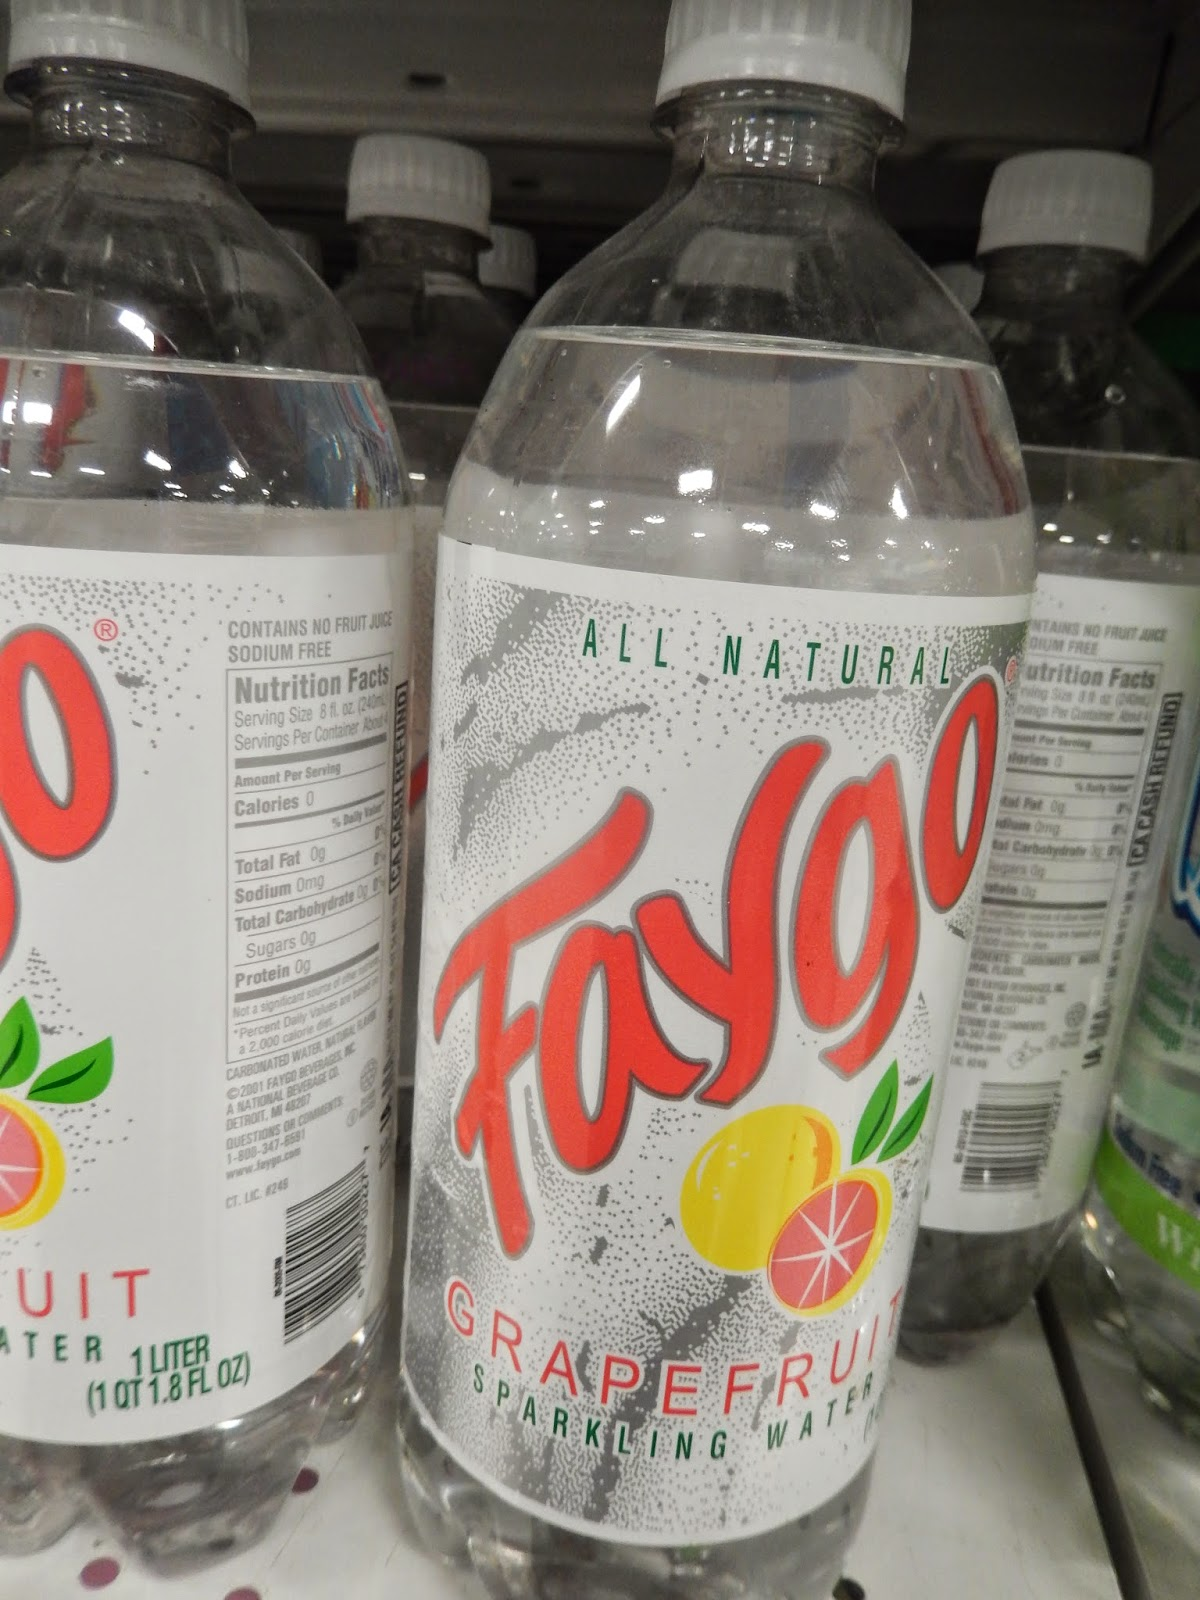 TARYTERRE: PICK UP MY TAB, WATER IS EXPENSIVE